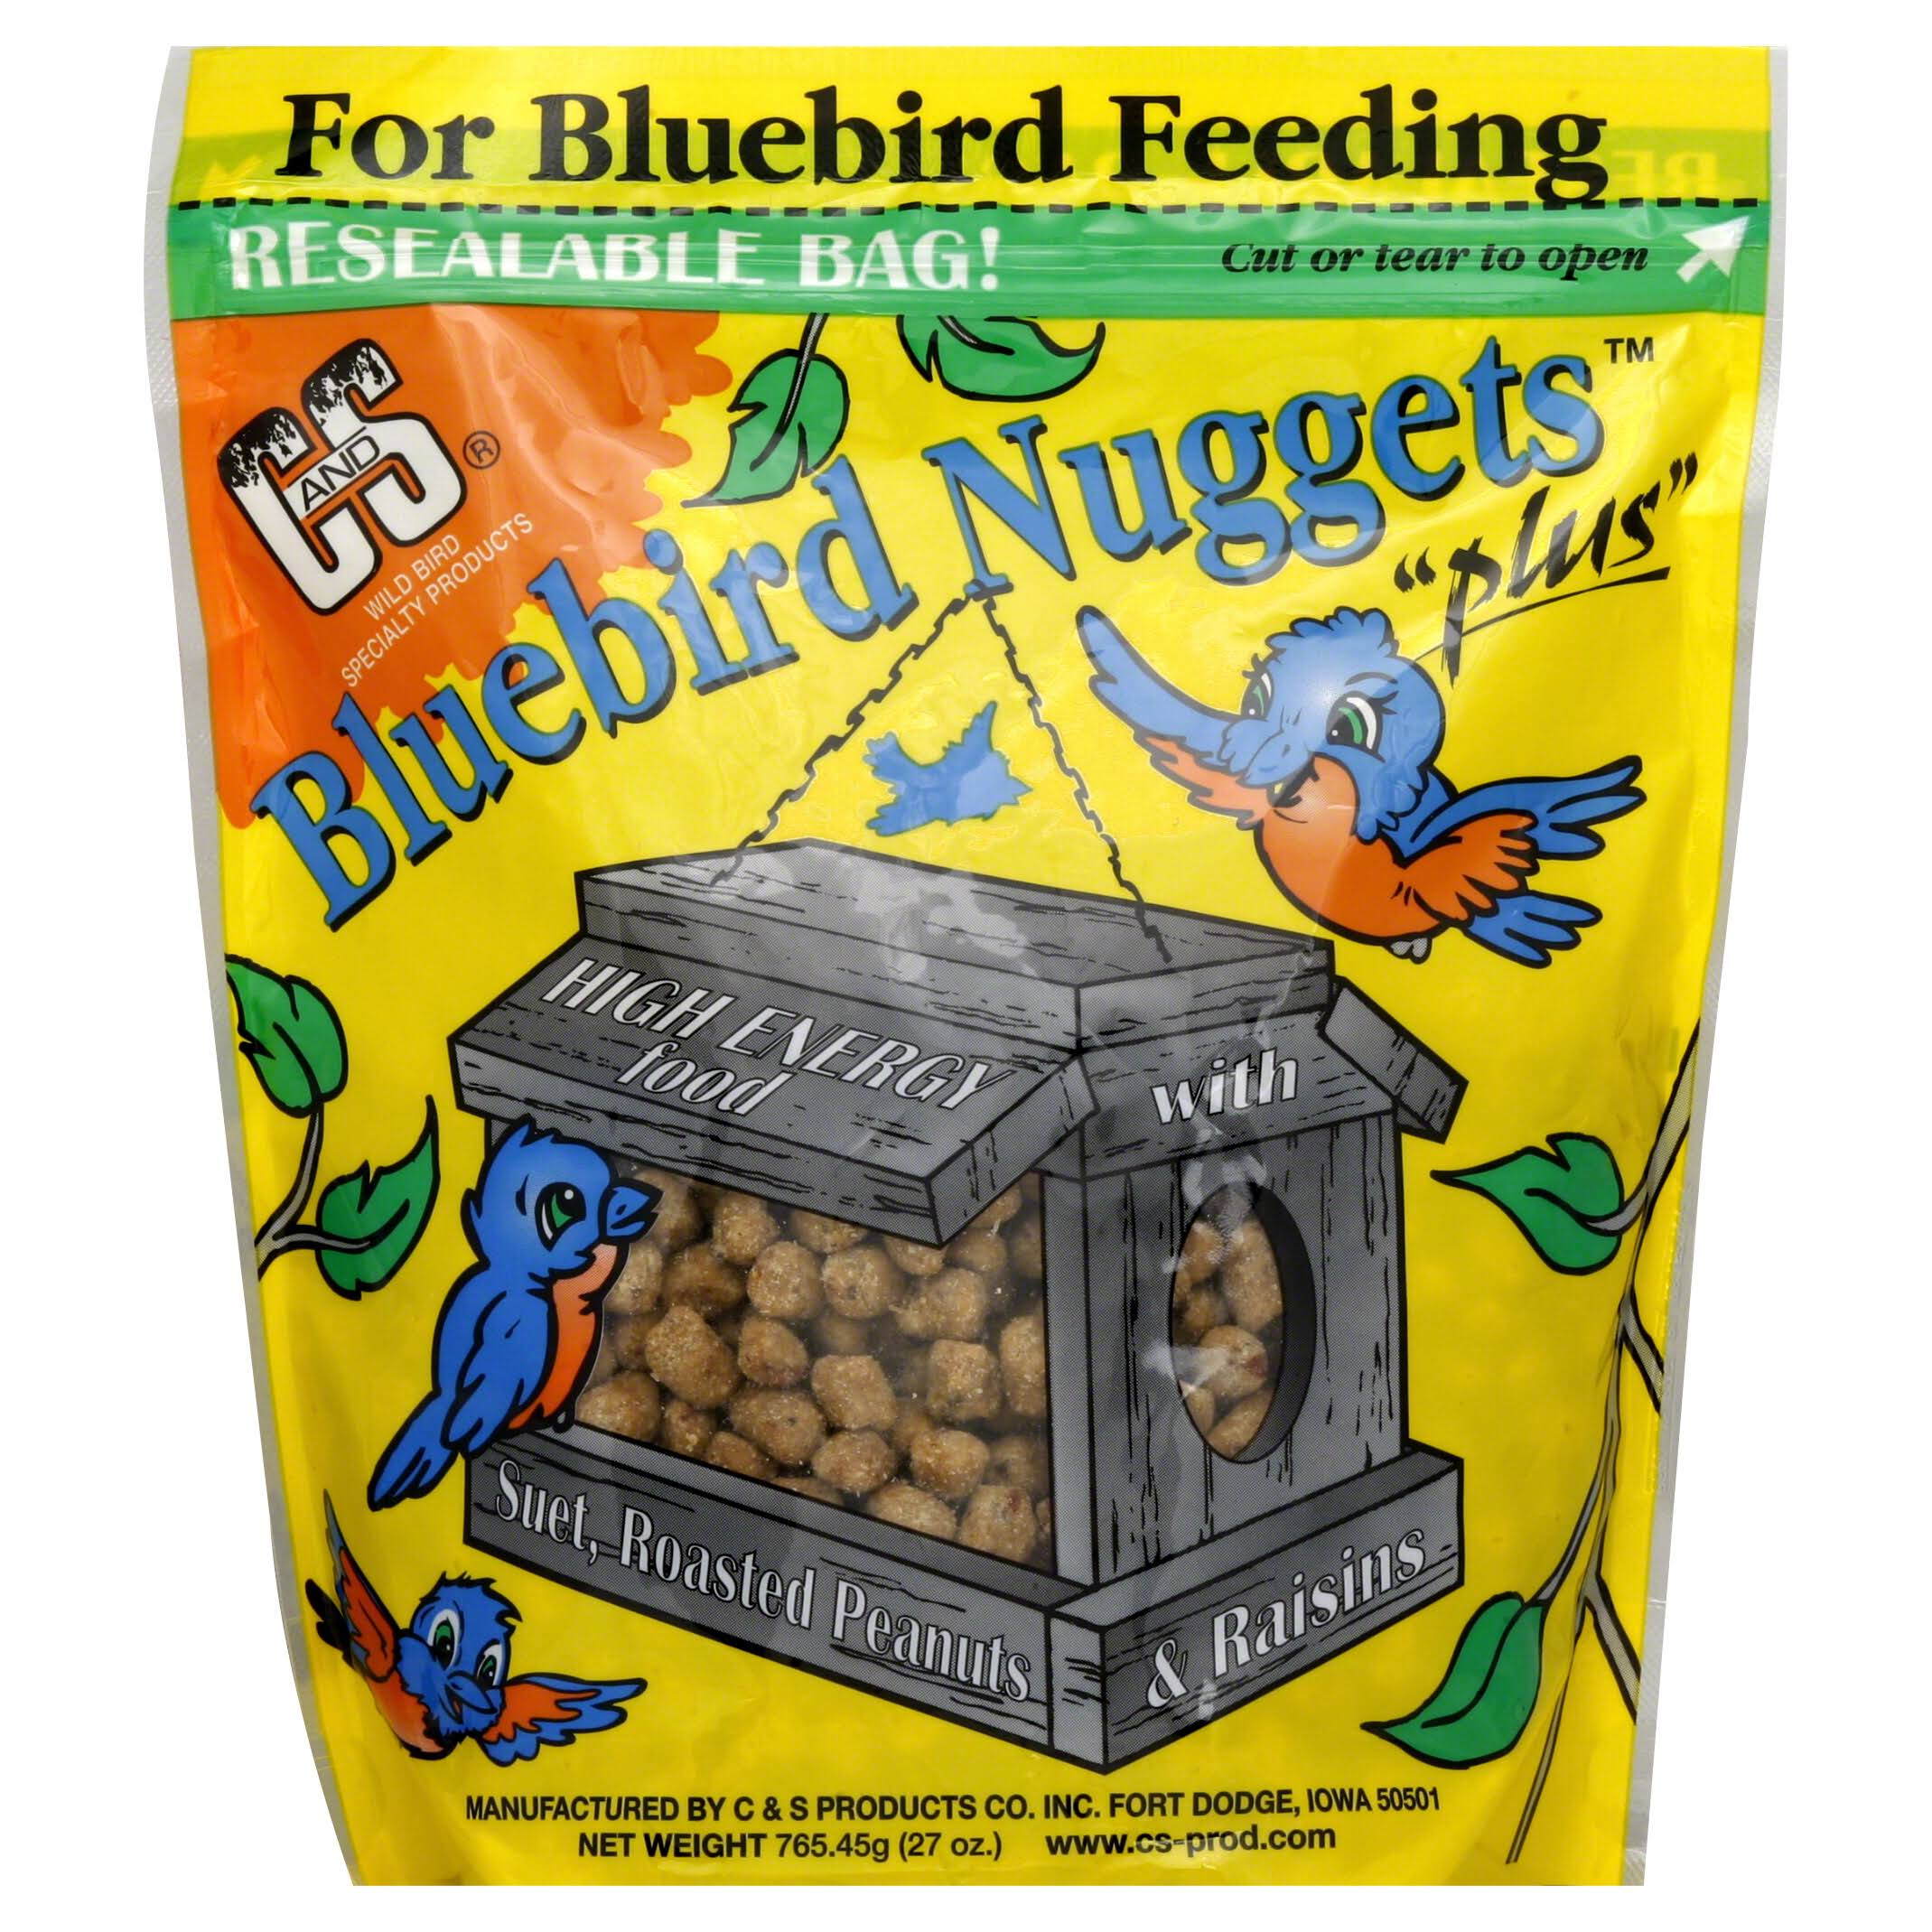 C and S Products Bluebird Suet Nuggets - 27oz